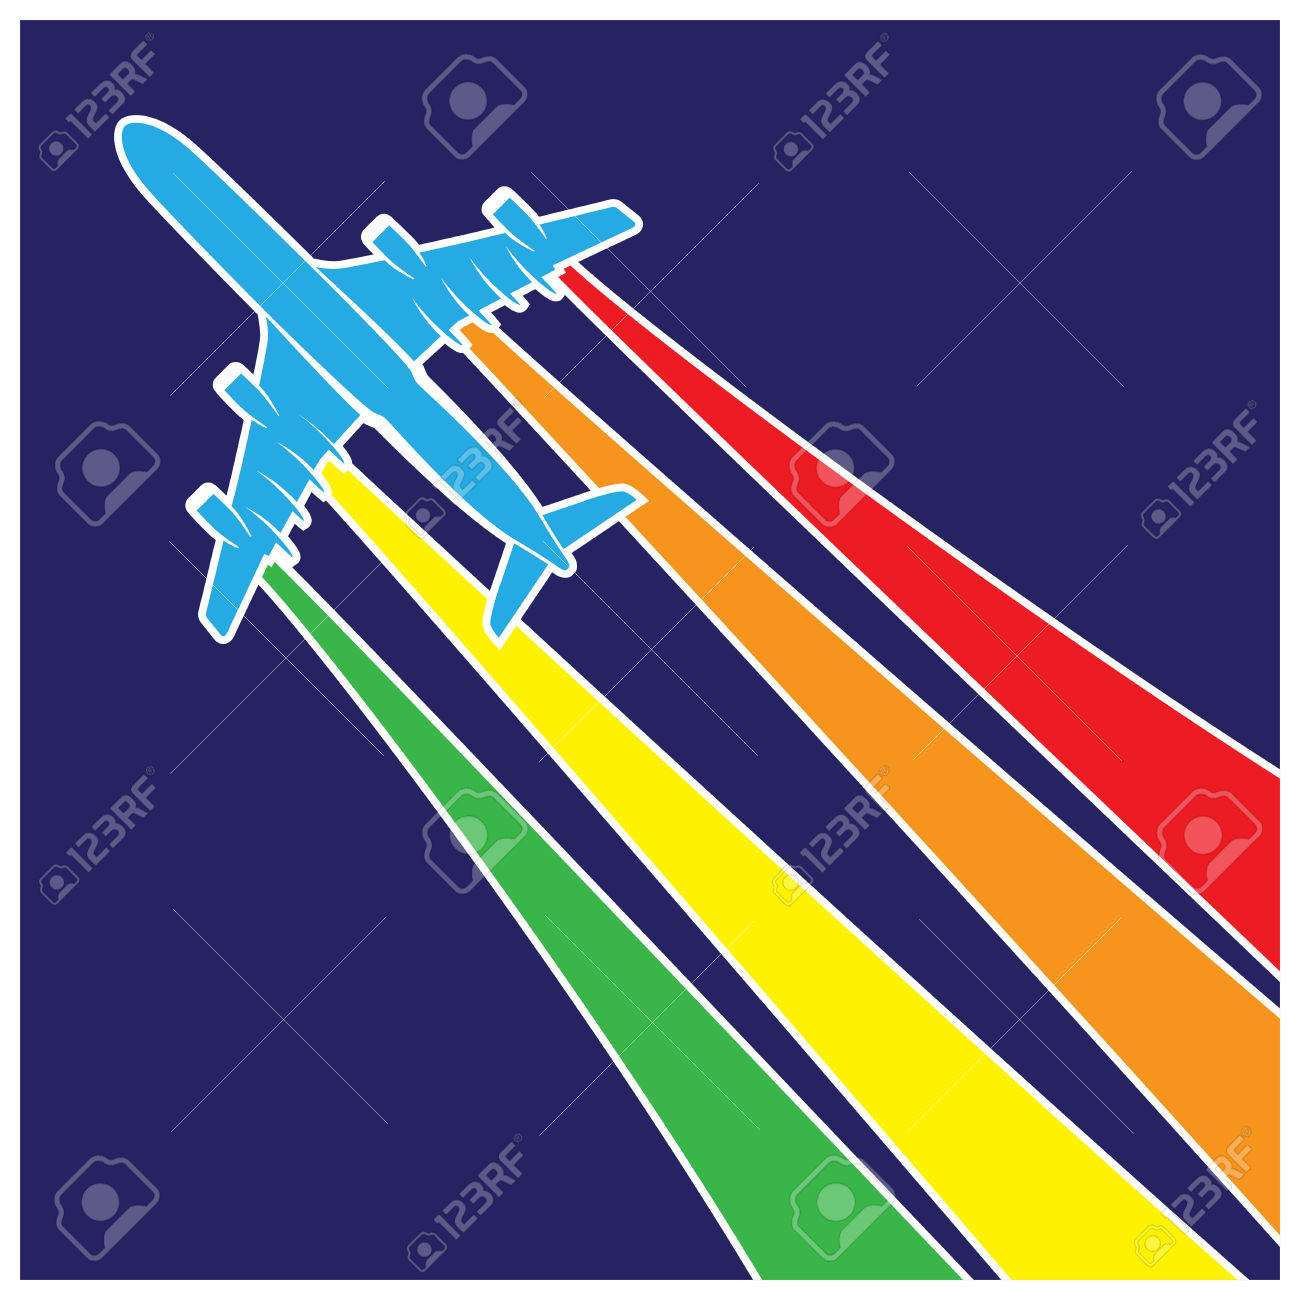 Stylized Vector Illustration On The Theme Of Aviation. Plane.